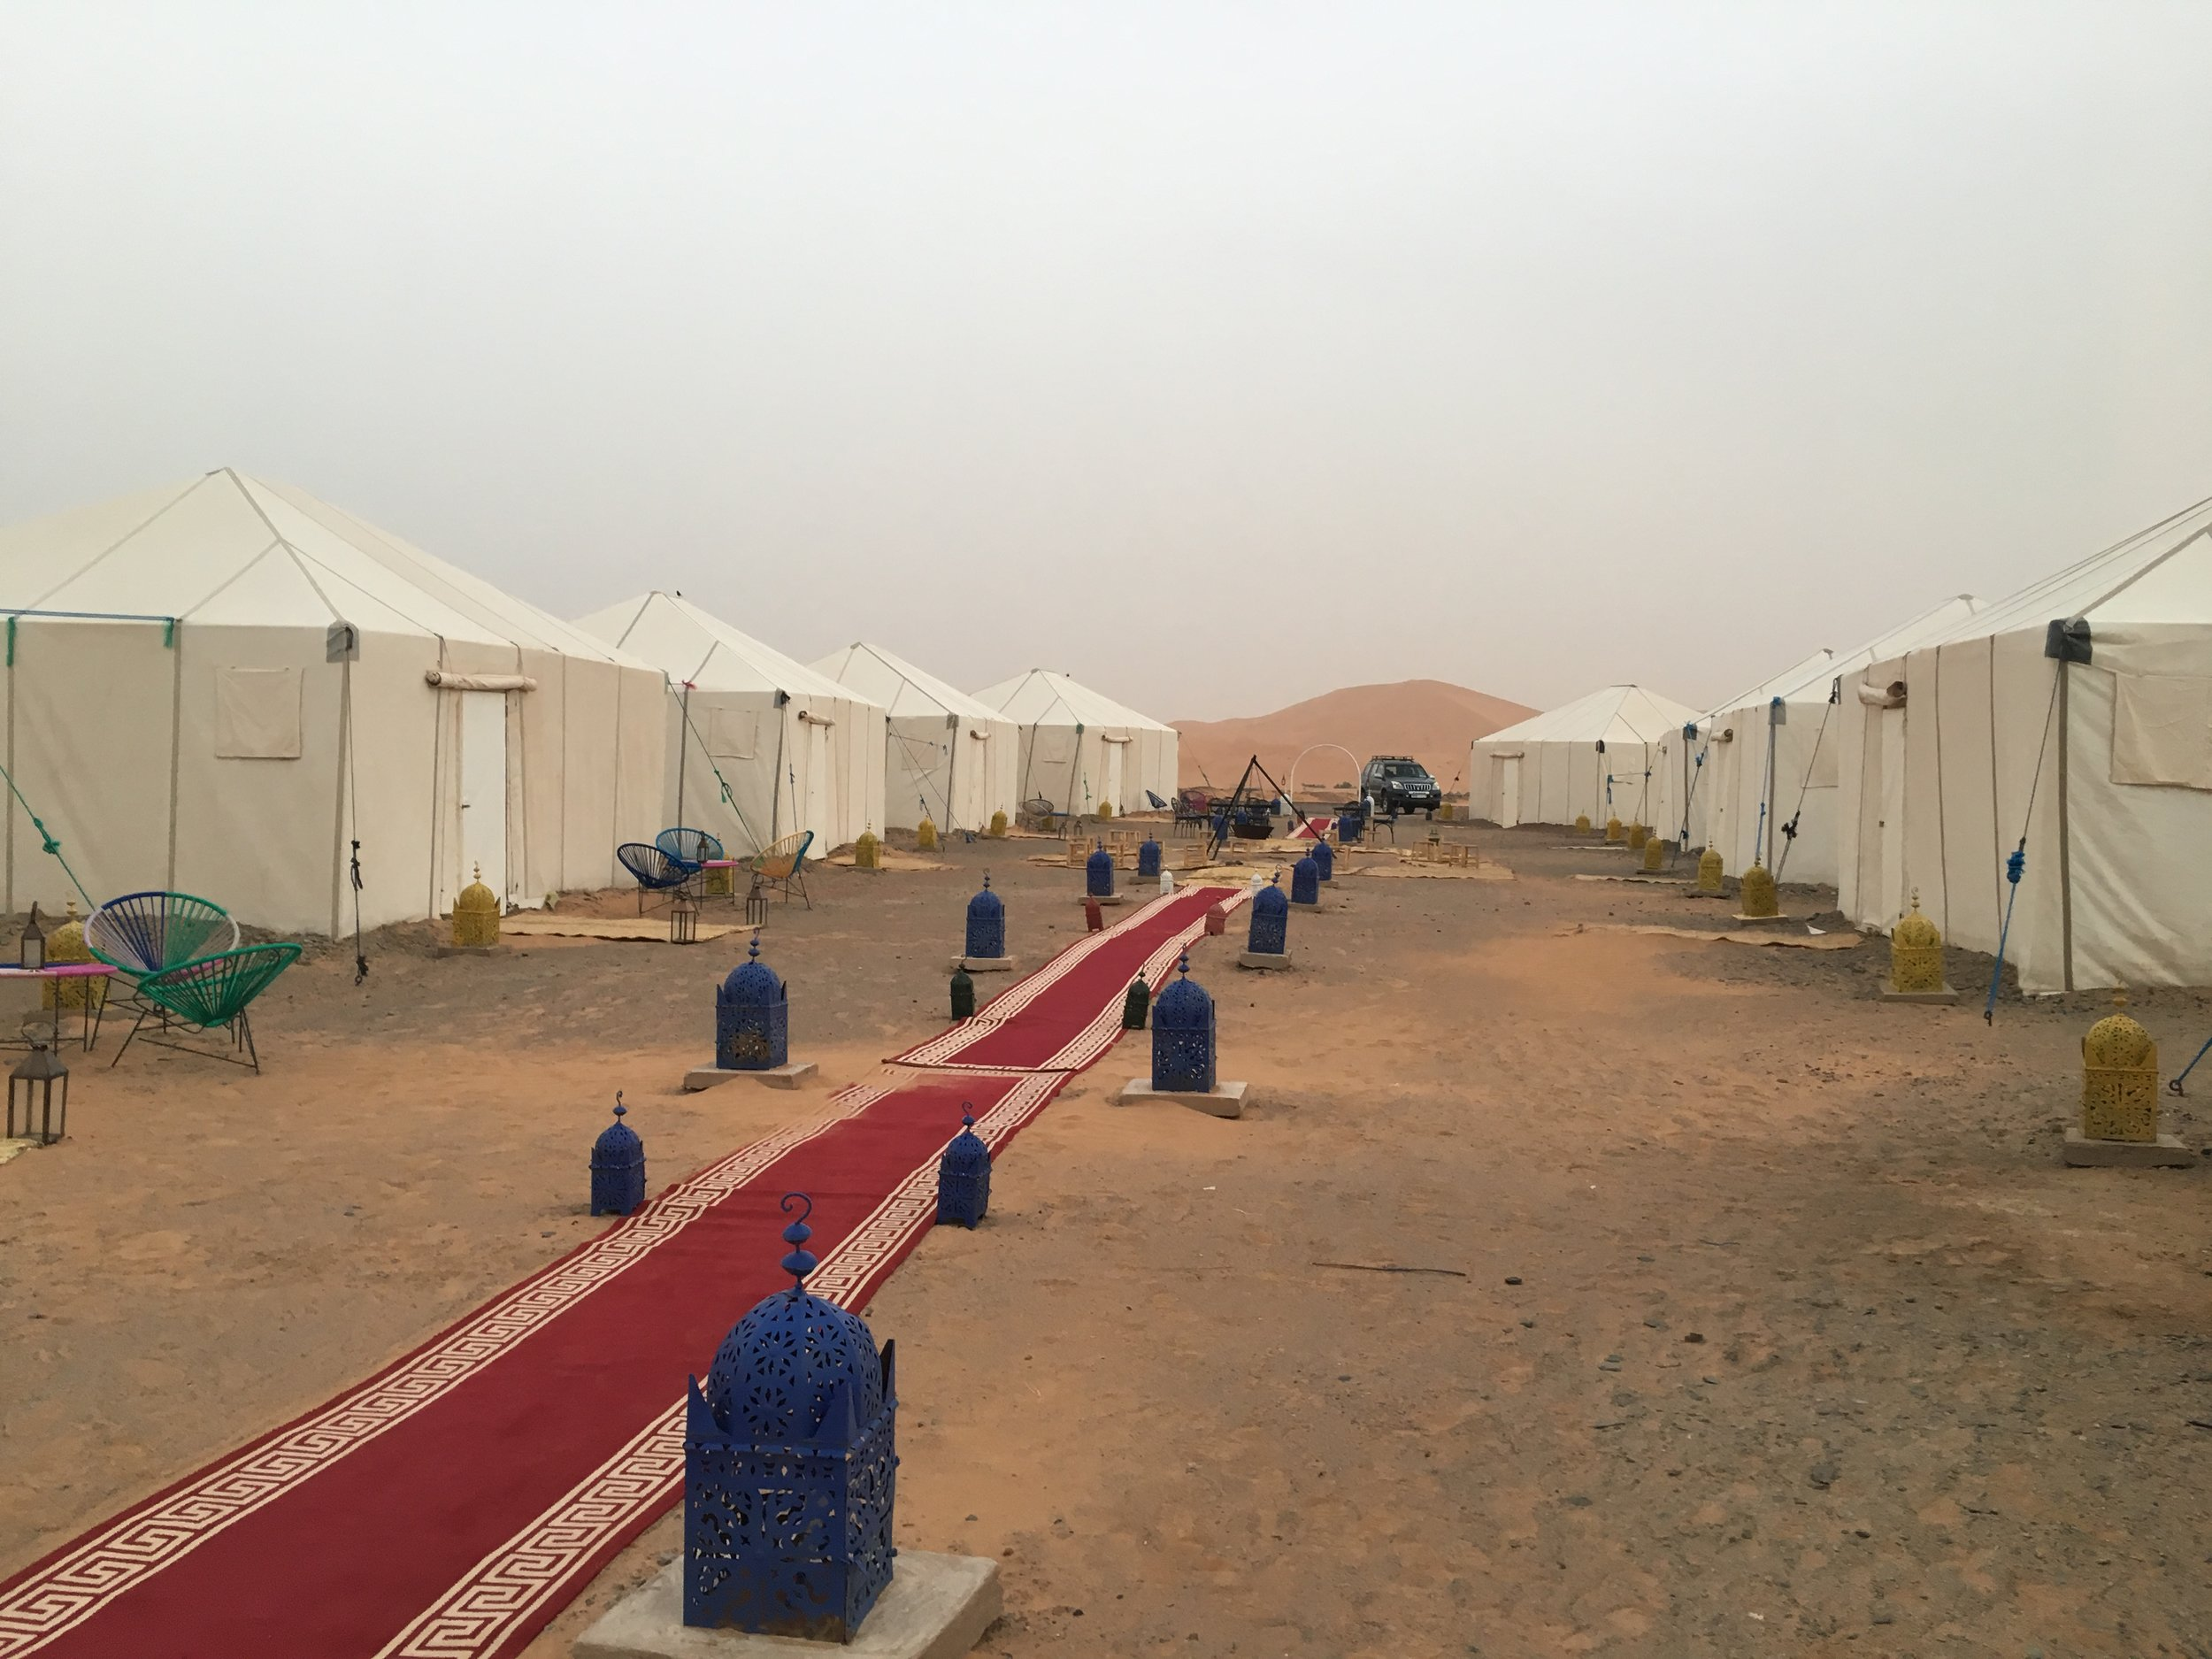 The desert camp in the Erg Chebbii Dunes has 10 tents and a red carpet aisle.